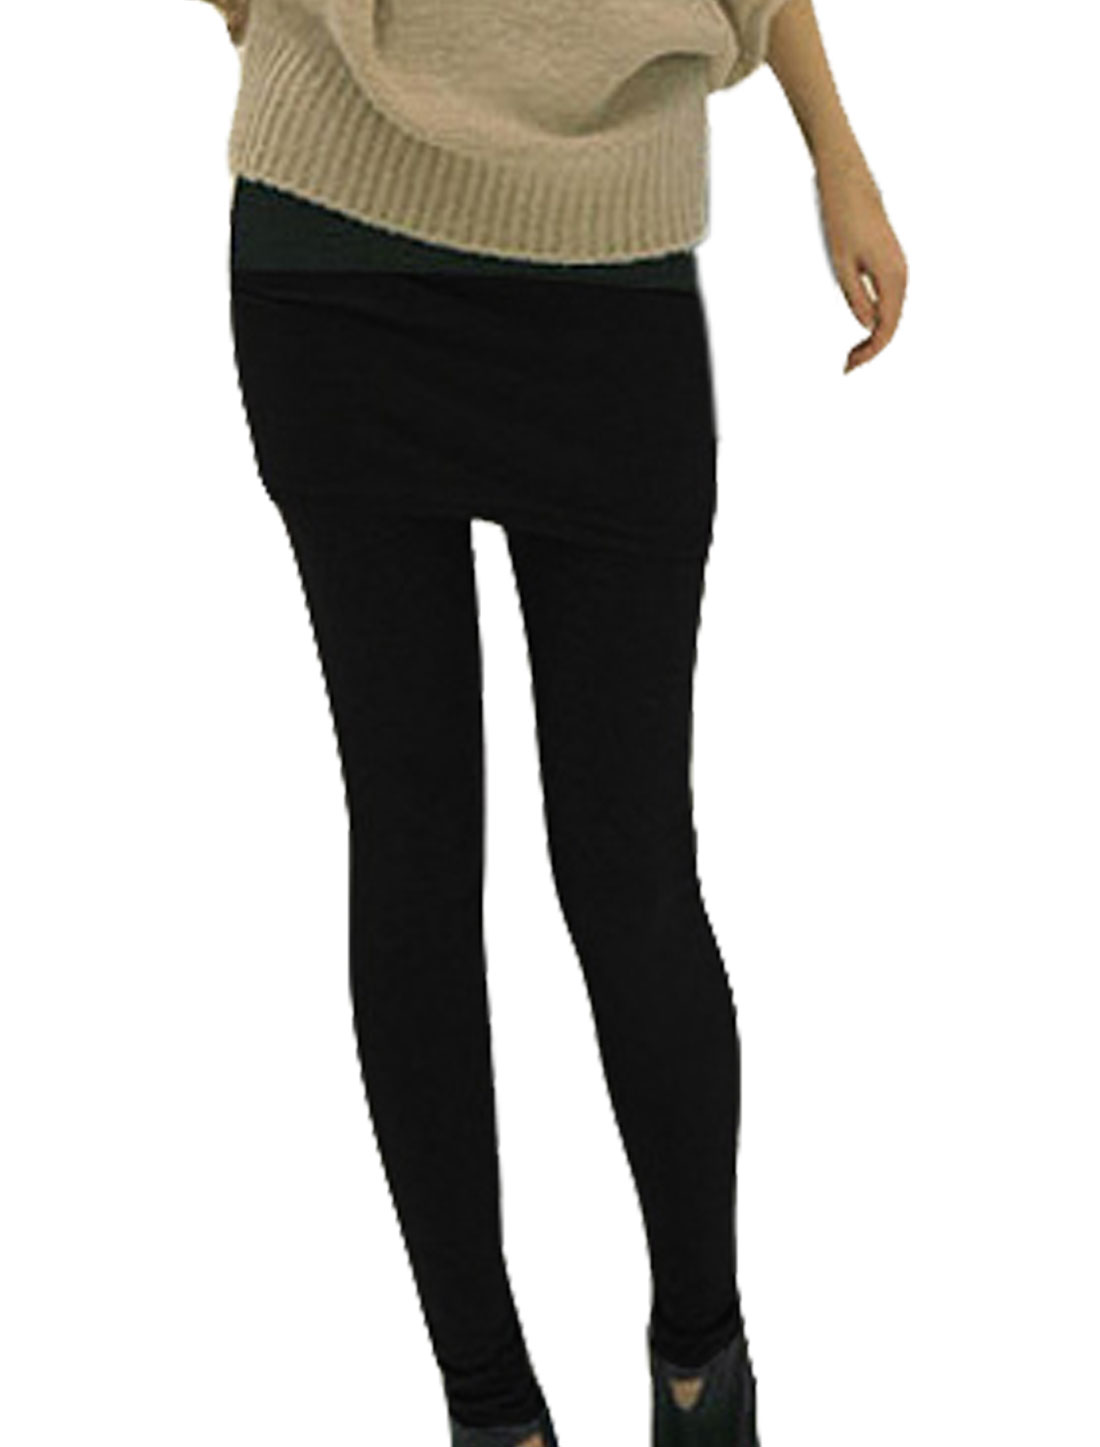 Ladies Black Elastic Waist Skinny Skirt Leggings Pants S